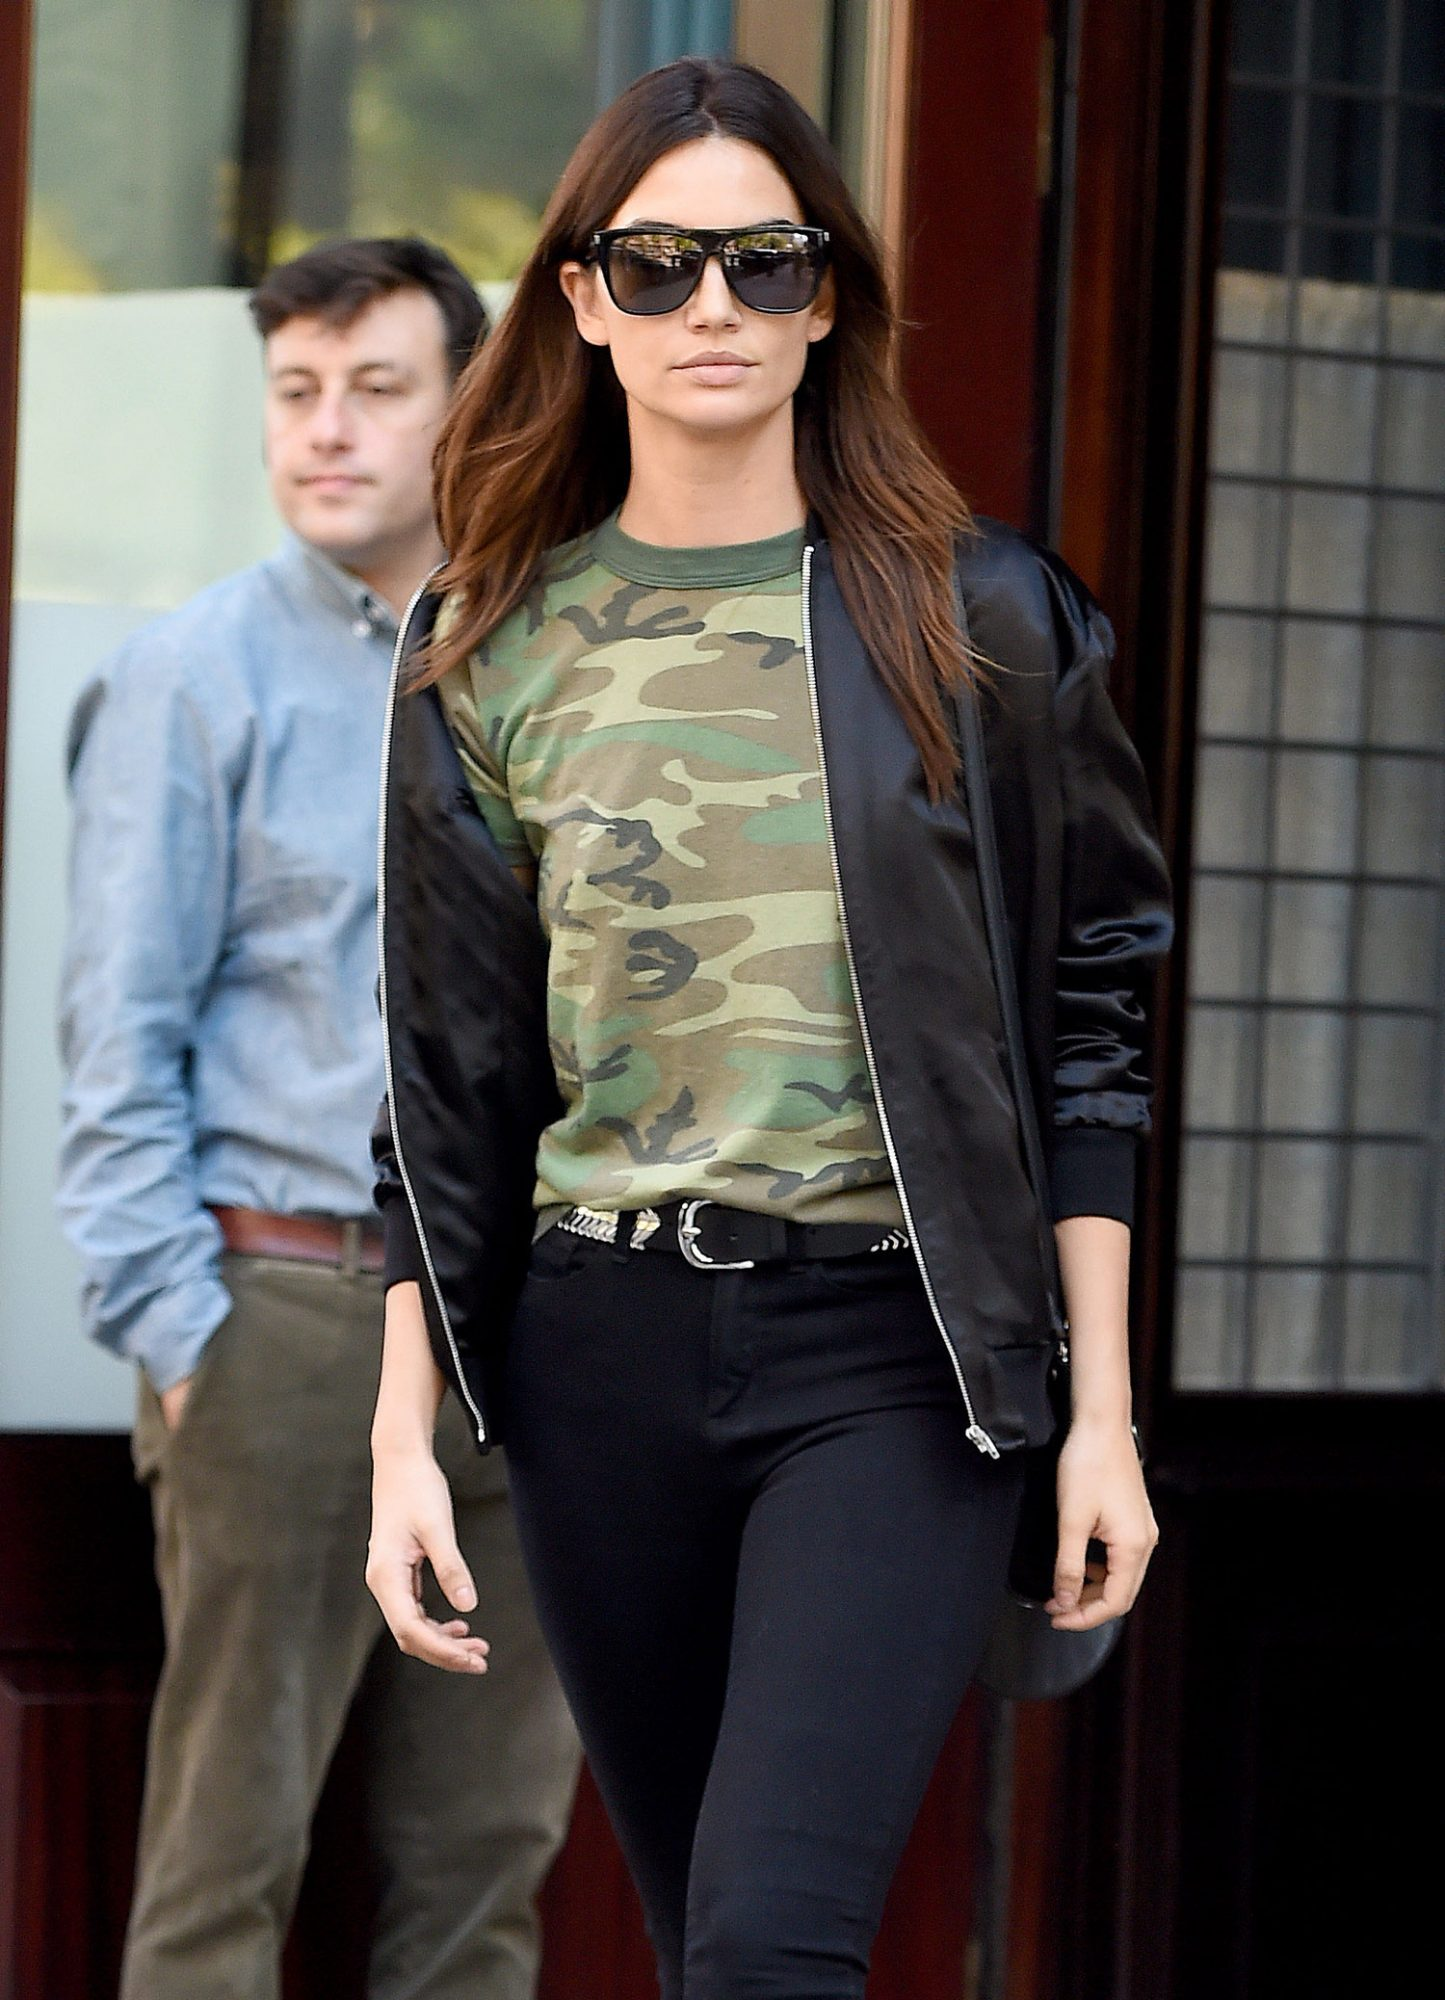 Lily Aldridge seen wearing a camouflage tee shirt in New York City